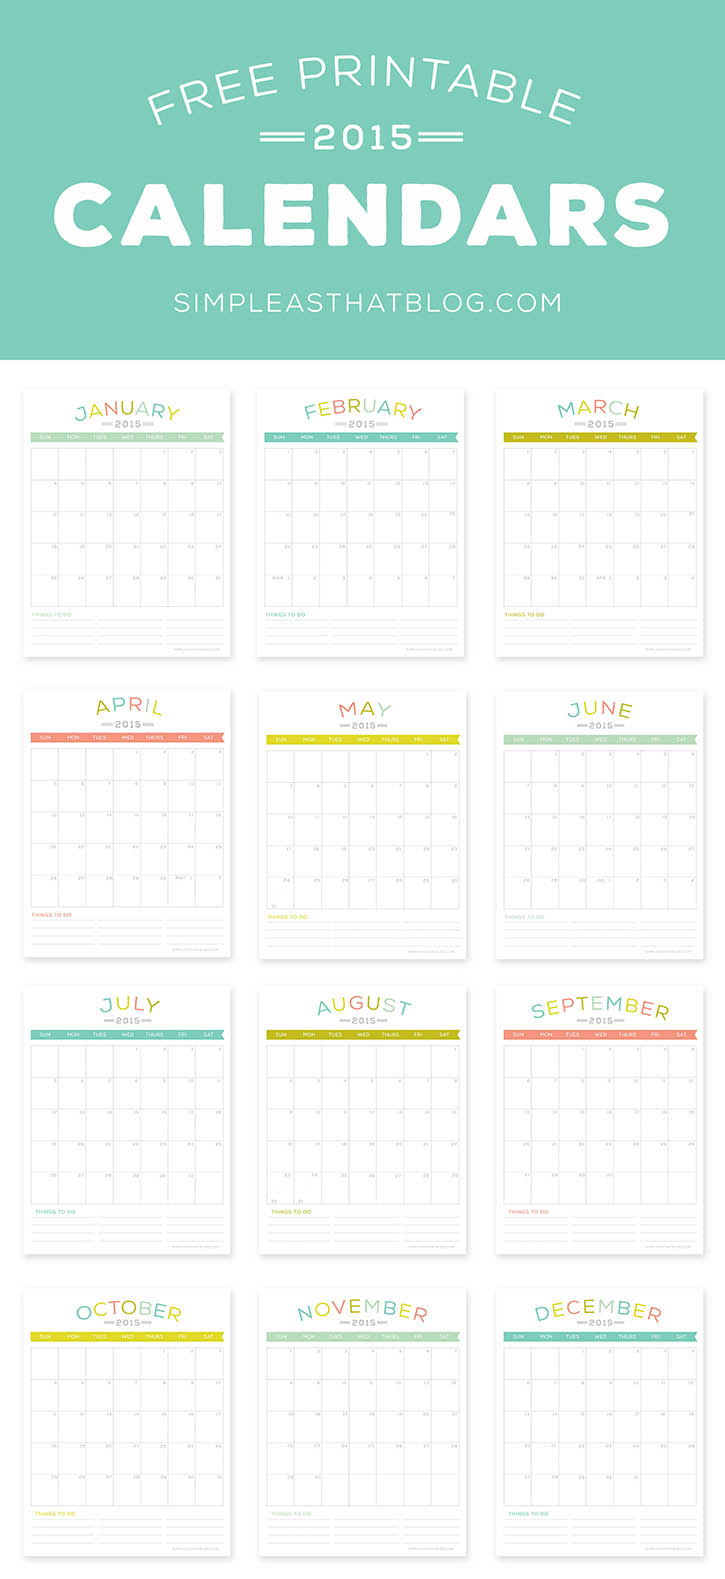 Calendar Organization Questionnaire : Free printable calendars